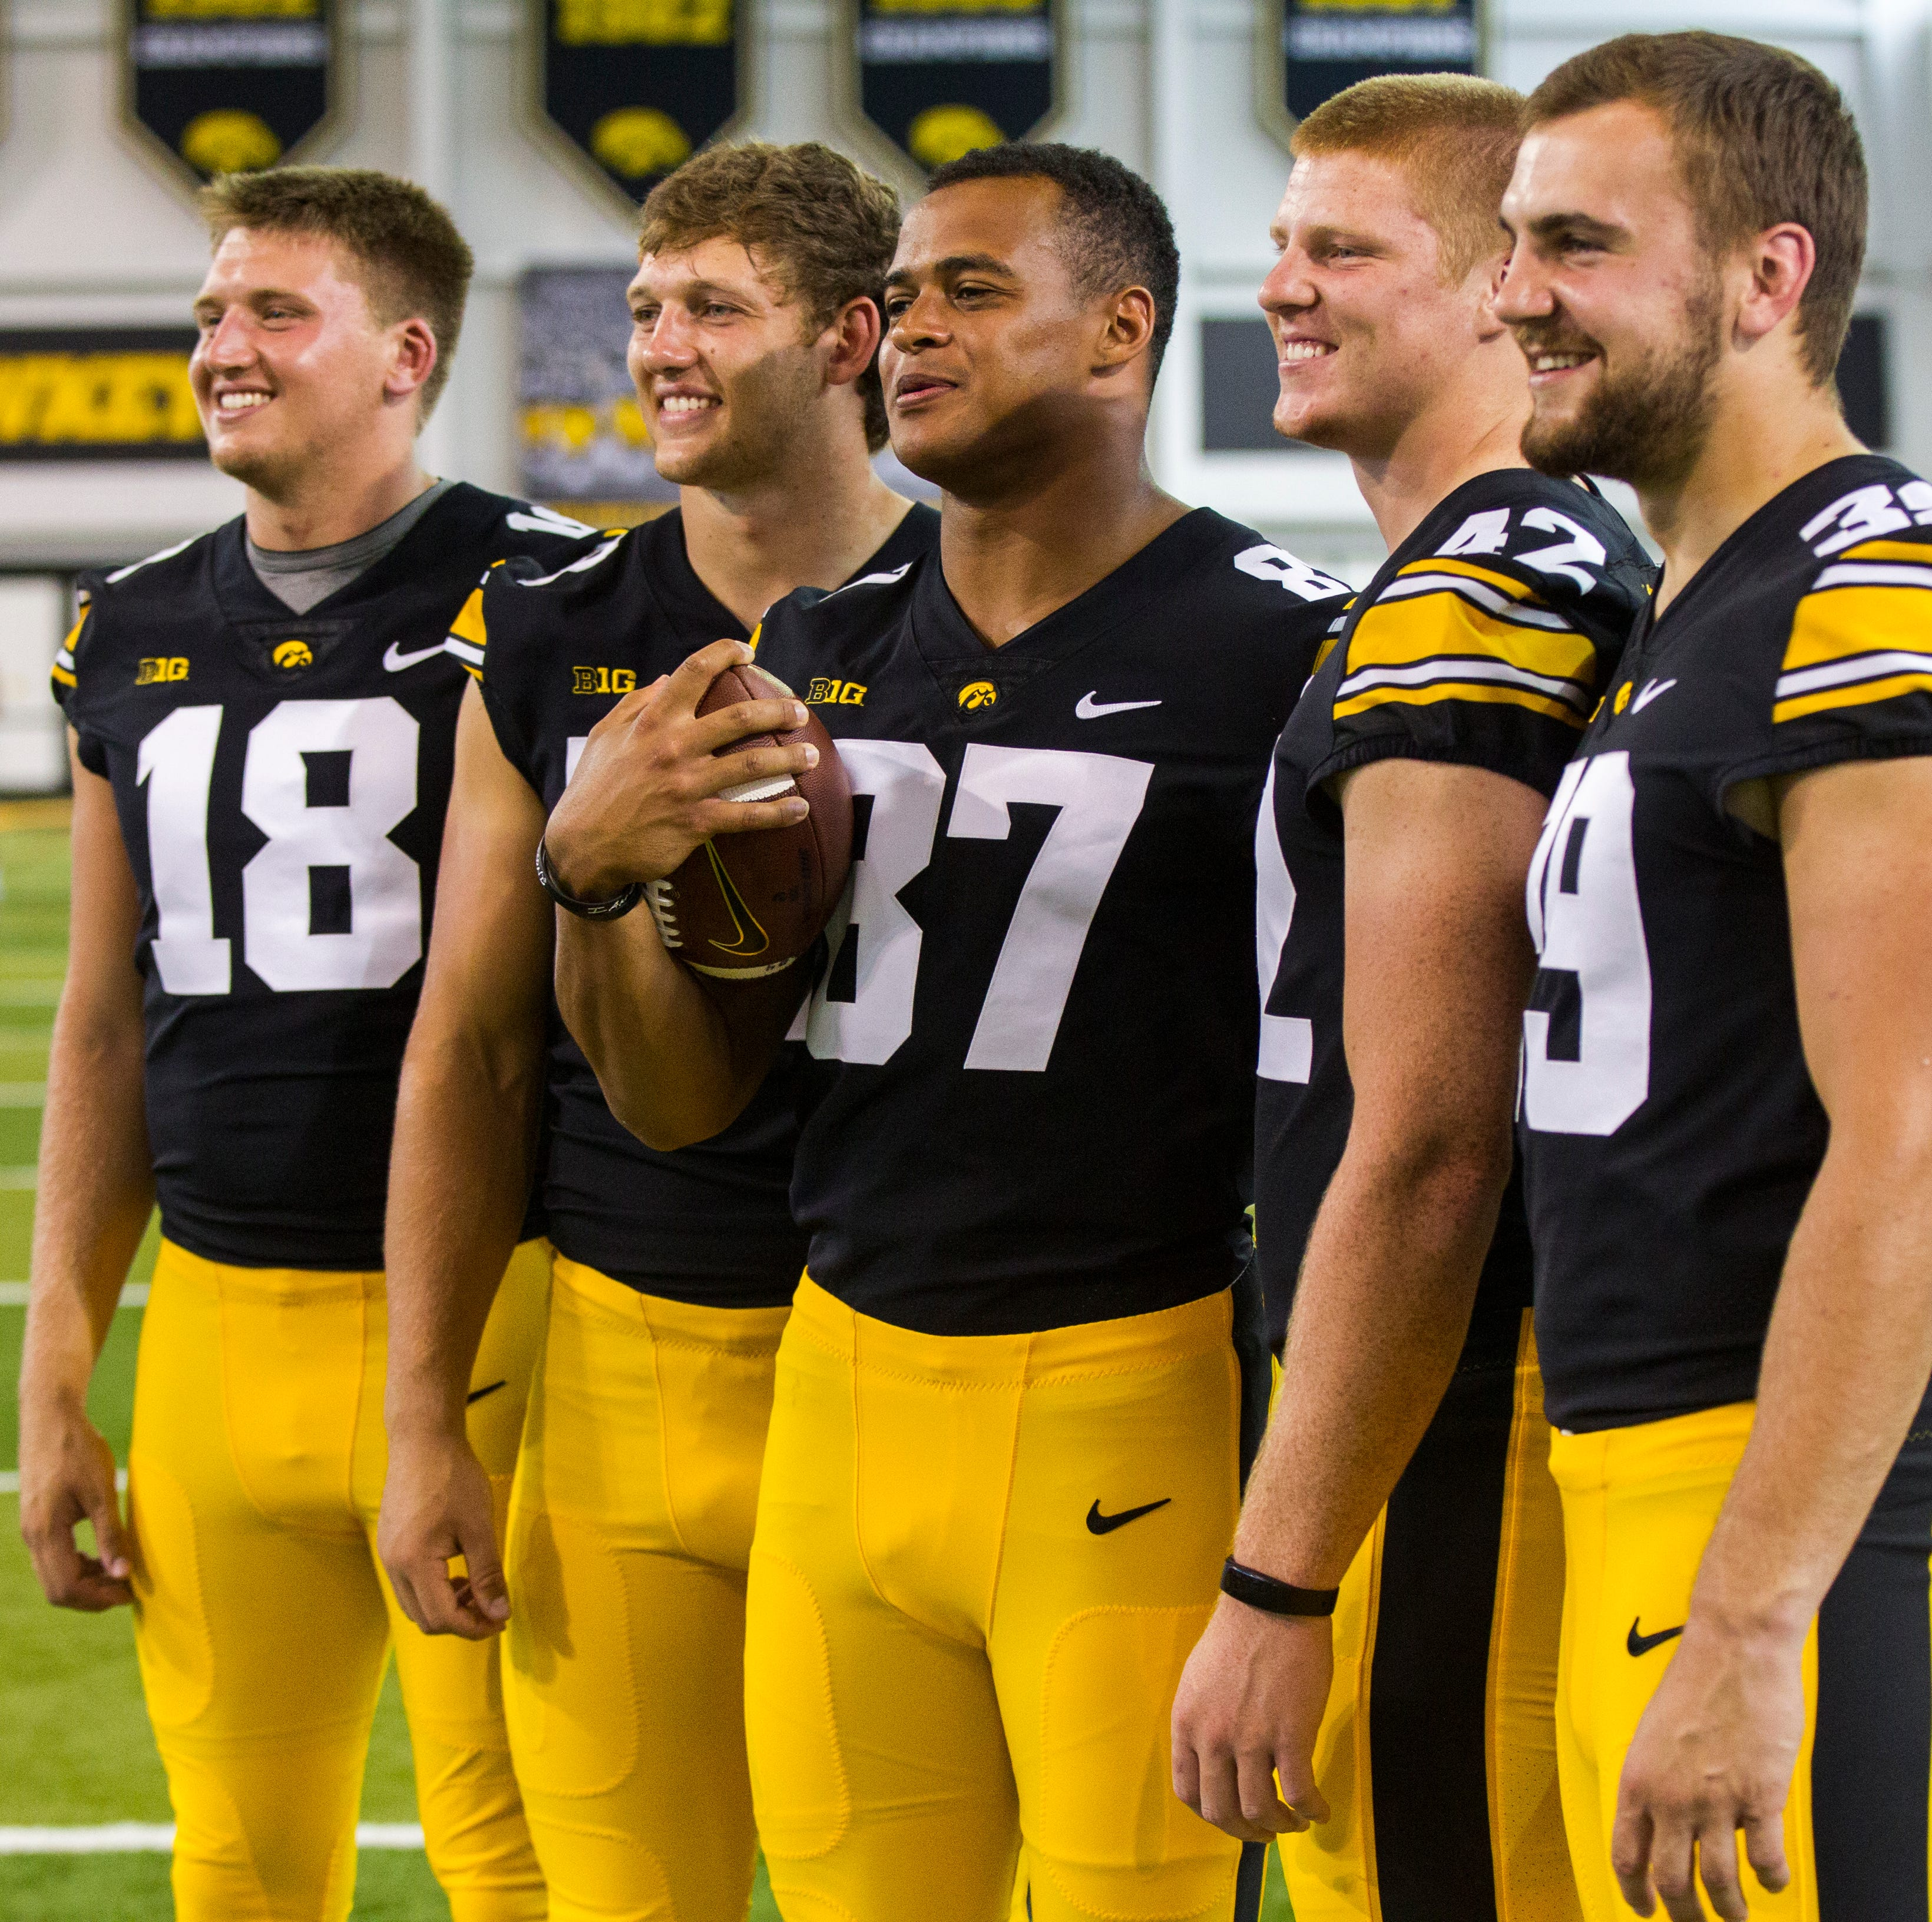 Leistikow: Hawkeye tight ends built, coached to match their 2018 hype